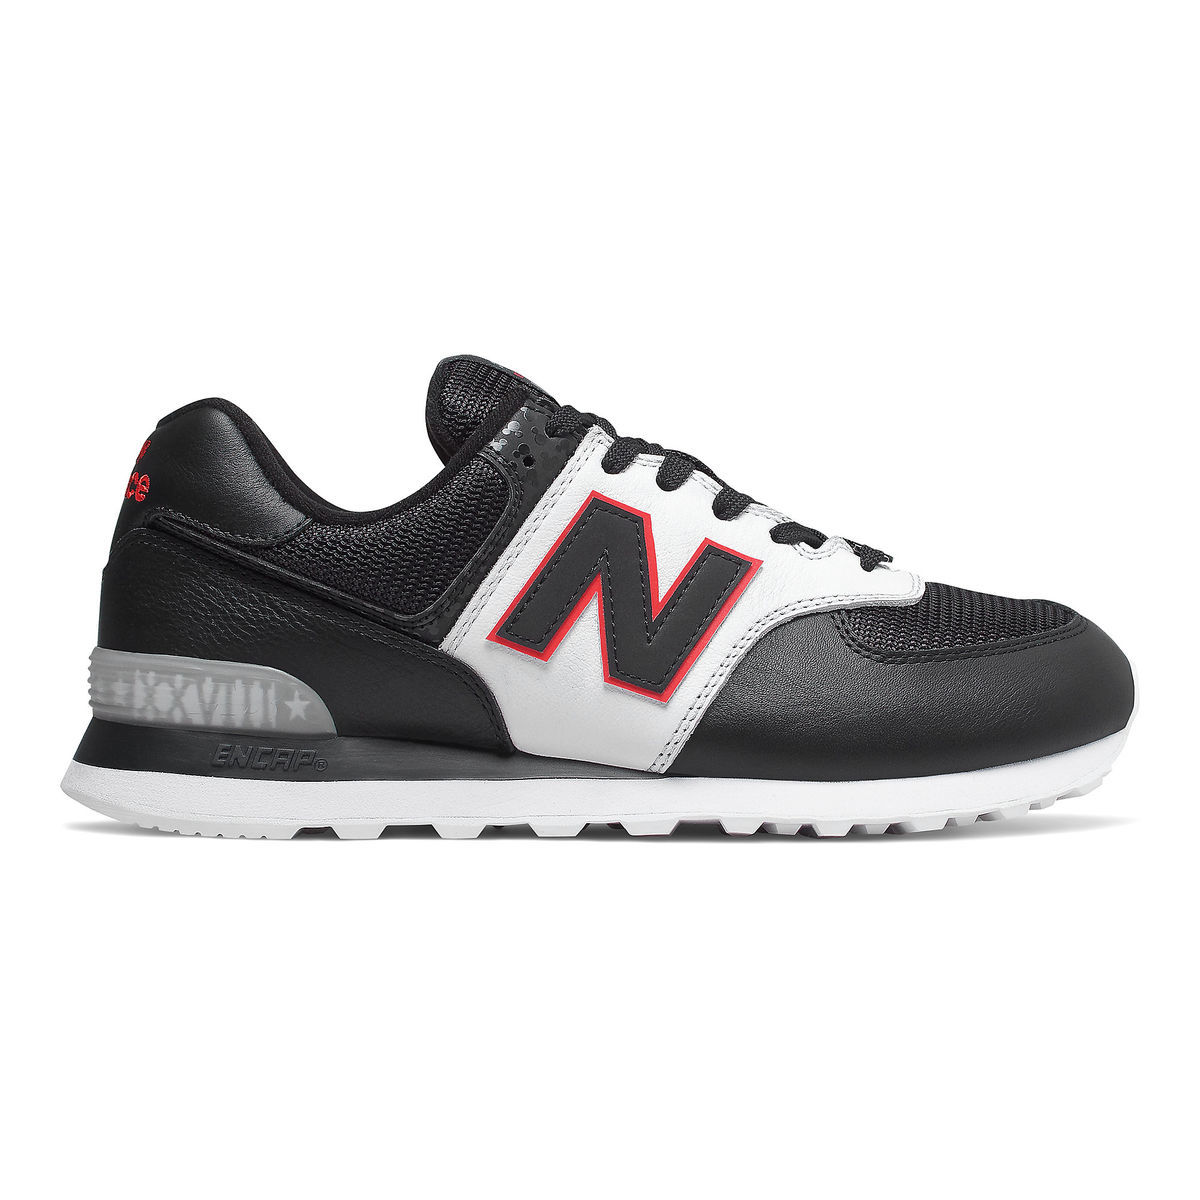 Product Image of Mickey Mouse 90th Anniversary 574 Sneakers for Adults by  New Balance # 1